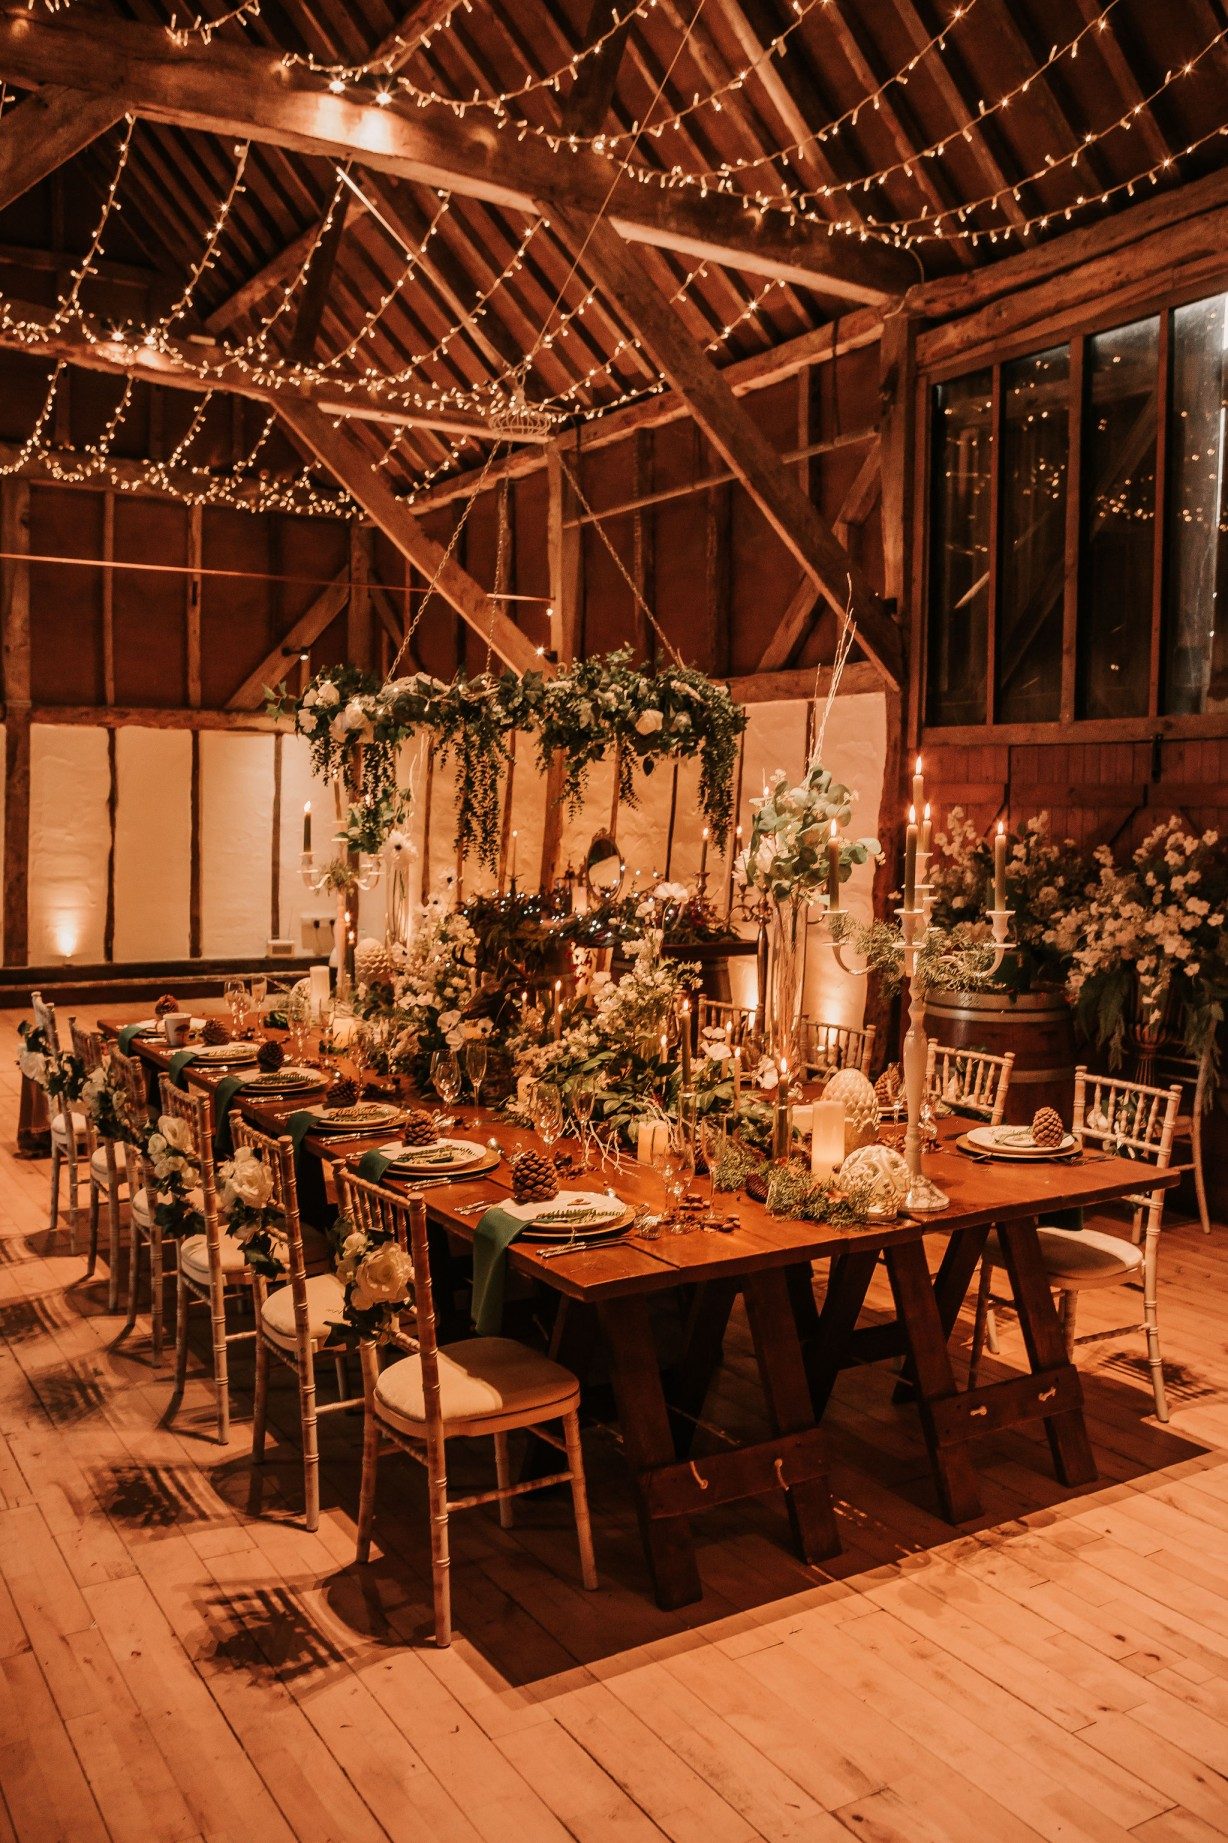 enchanting winter wedding - cosy wedding decor - barn wedding styling - rustic luxe wedding